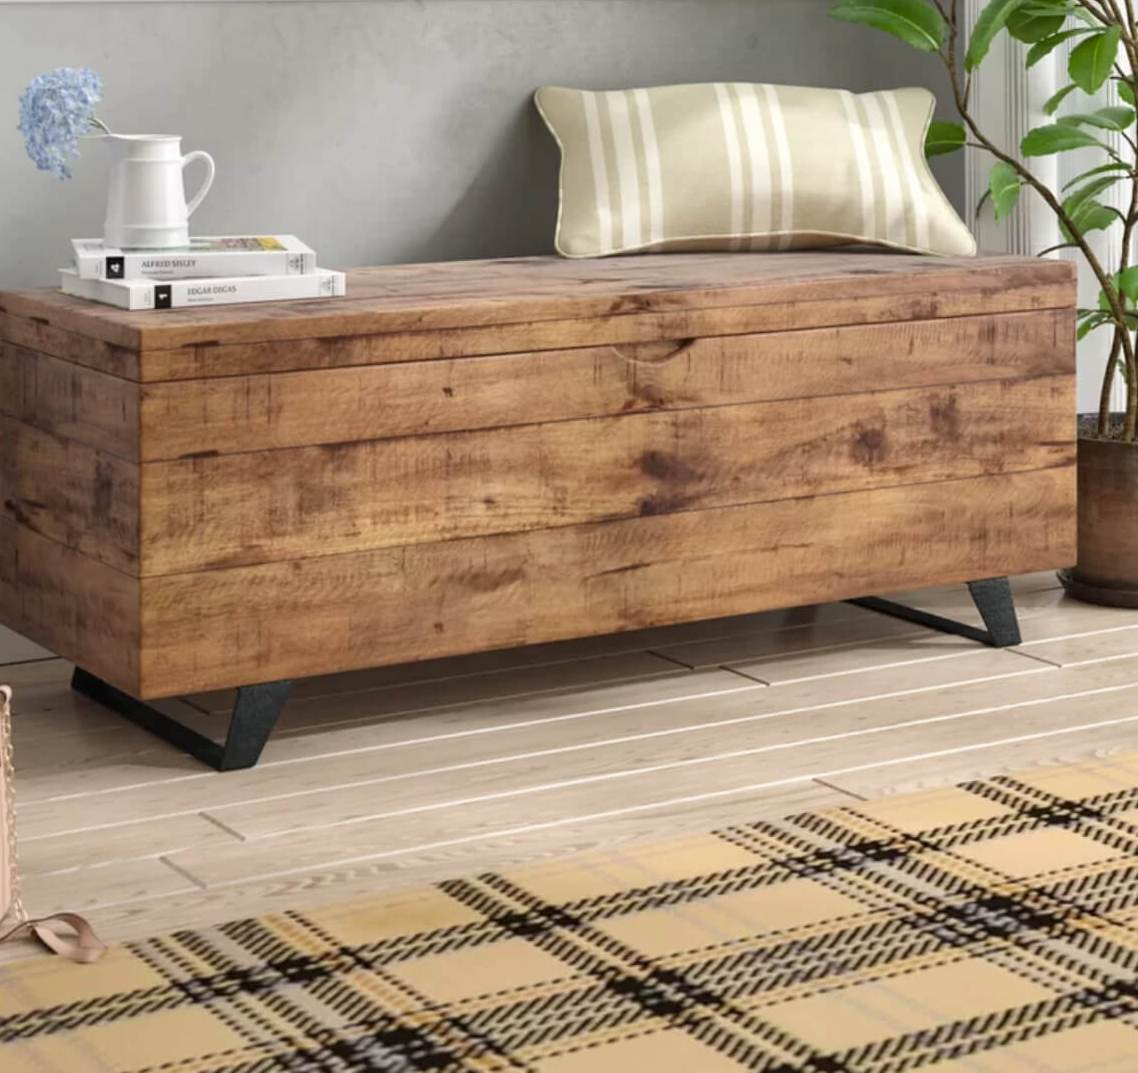 a right coffee table can double as a storage trunk in your living room and you may use it as a bench